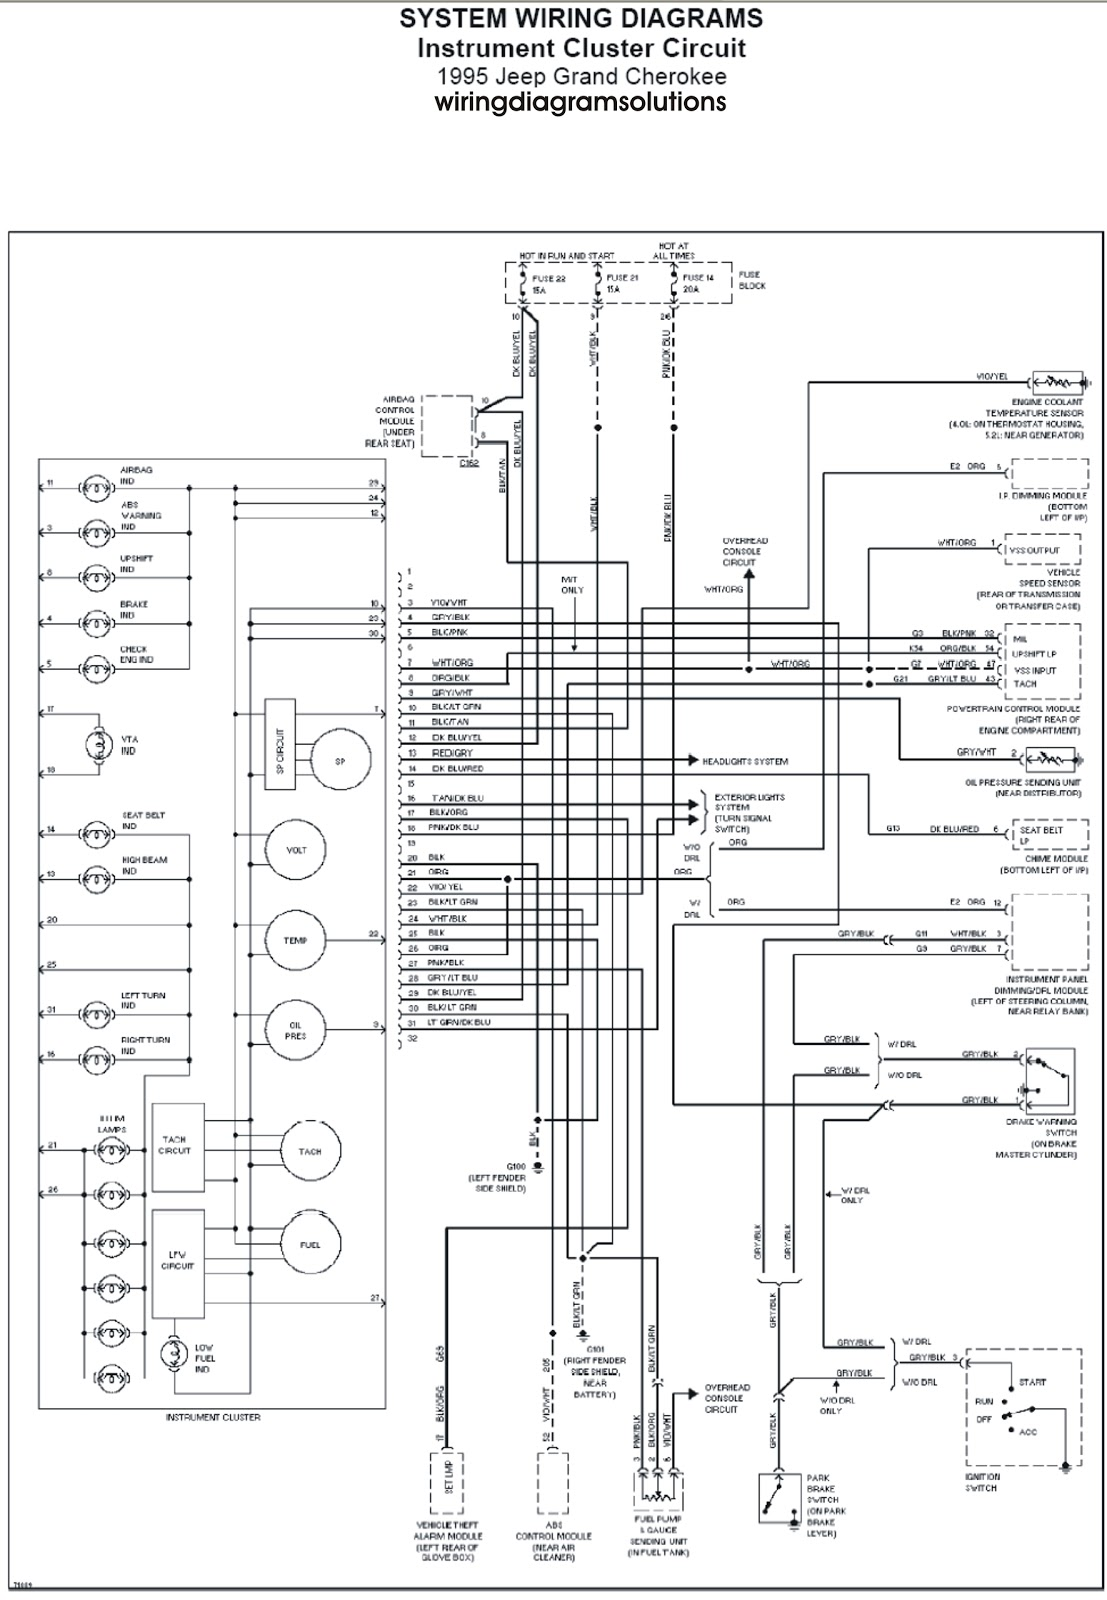 diagram] 2014 jeep grand cherokee radio wiring diagram full version hd  quality wiring diagram - diagramewaldy.bistrotdellosport.it  bistrot dello sport